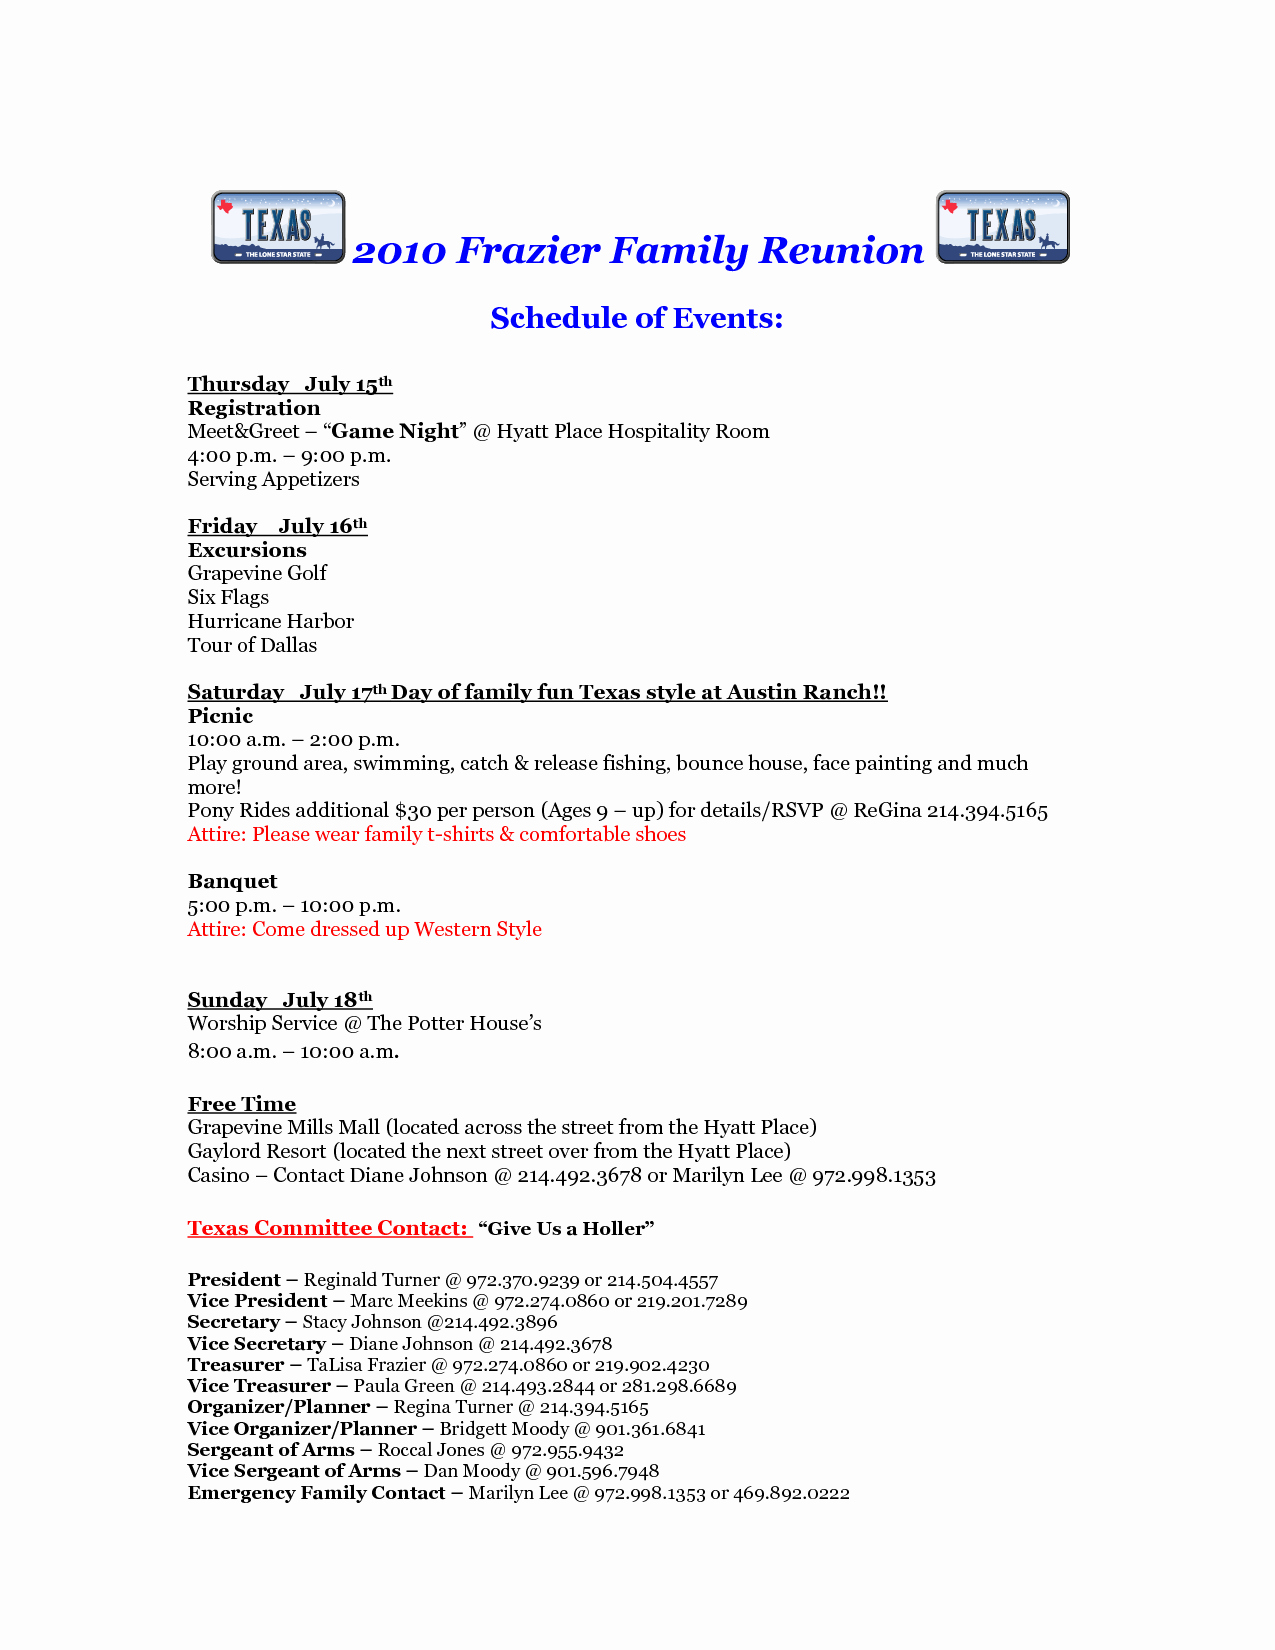 Family Reunion Agenda Template Lovely Free Printable Family Reunion Letters